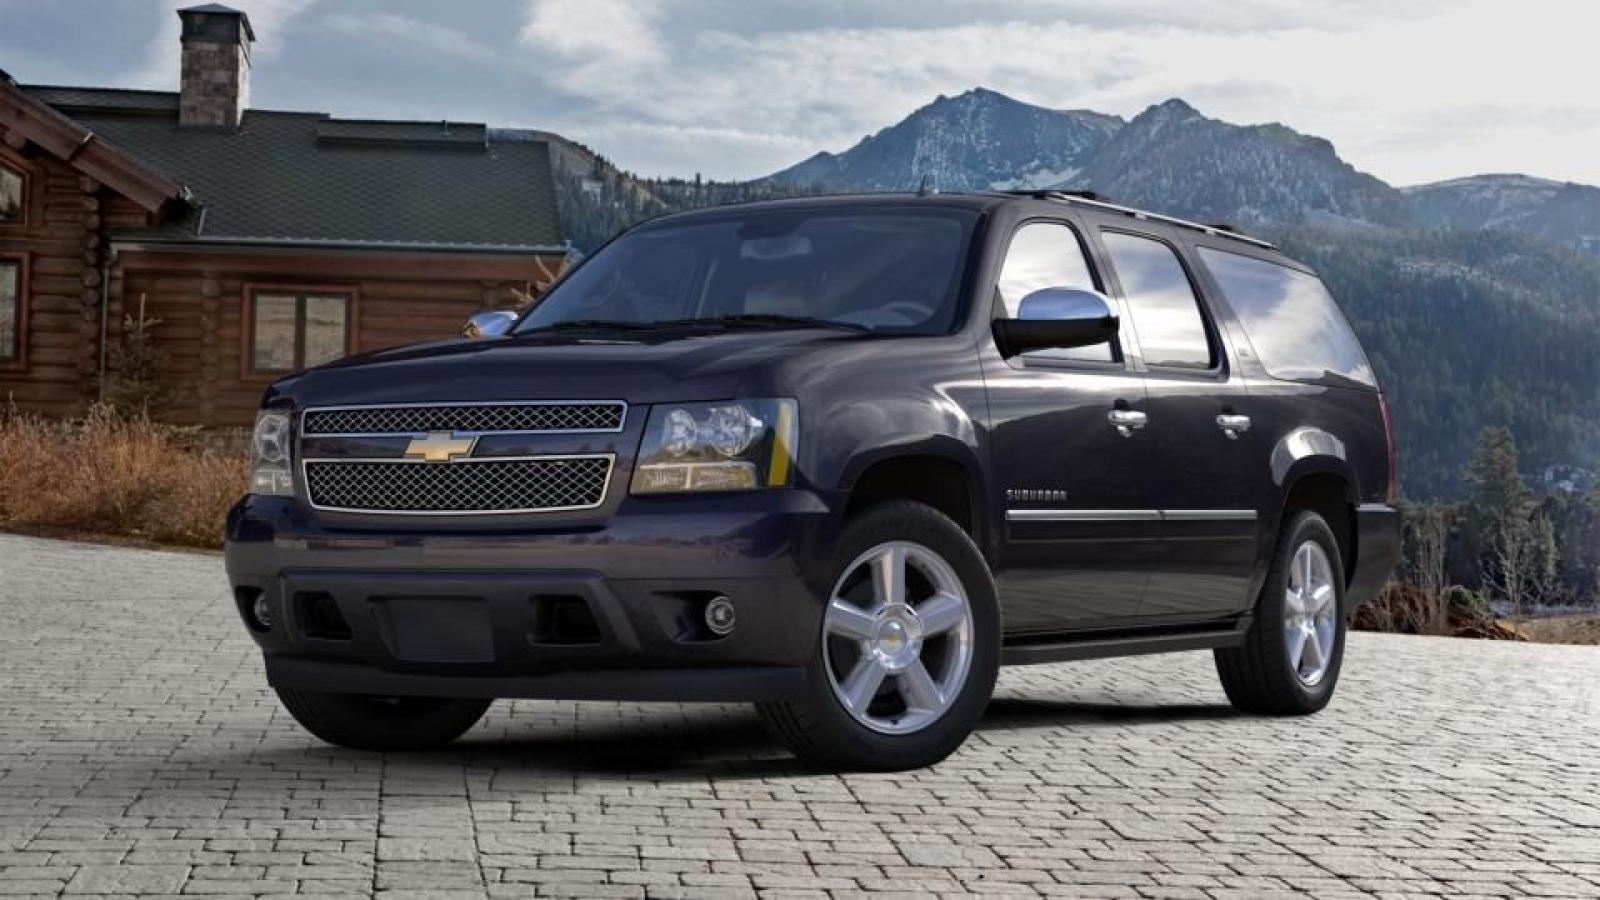 2014 chevrolet suburban information and photos zombiedrive. Black Bedroom Furniture Sets. Home Design Ideas